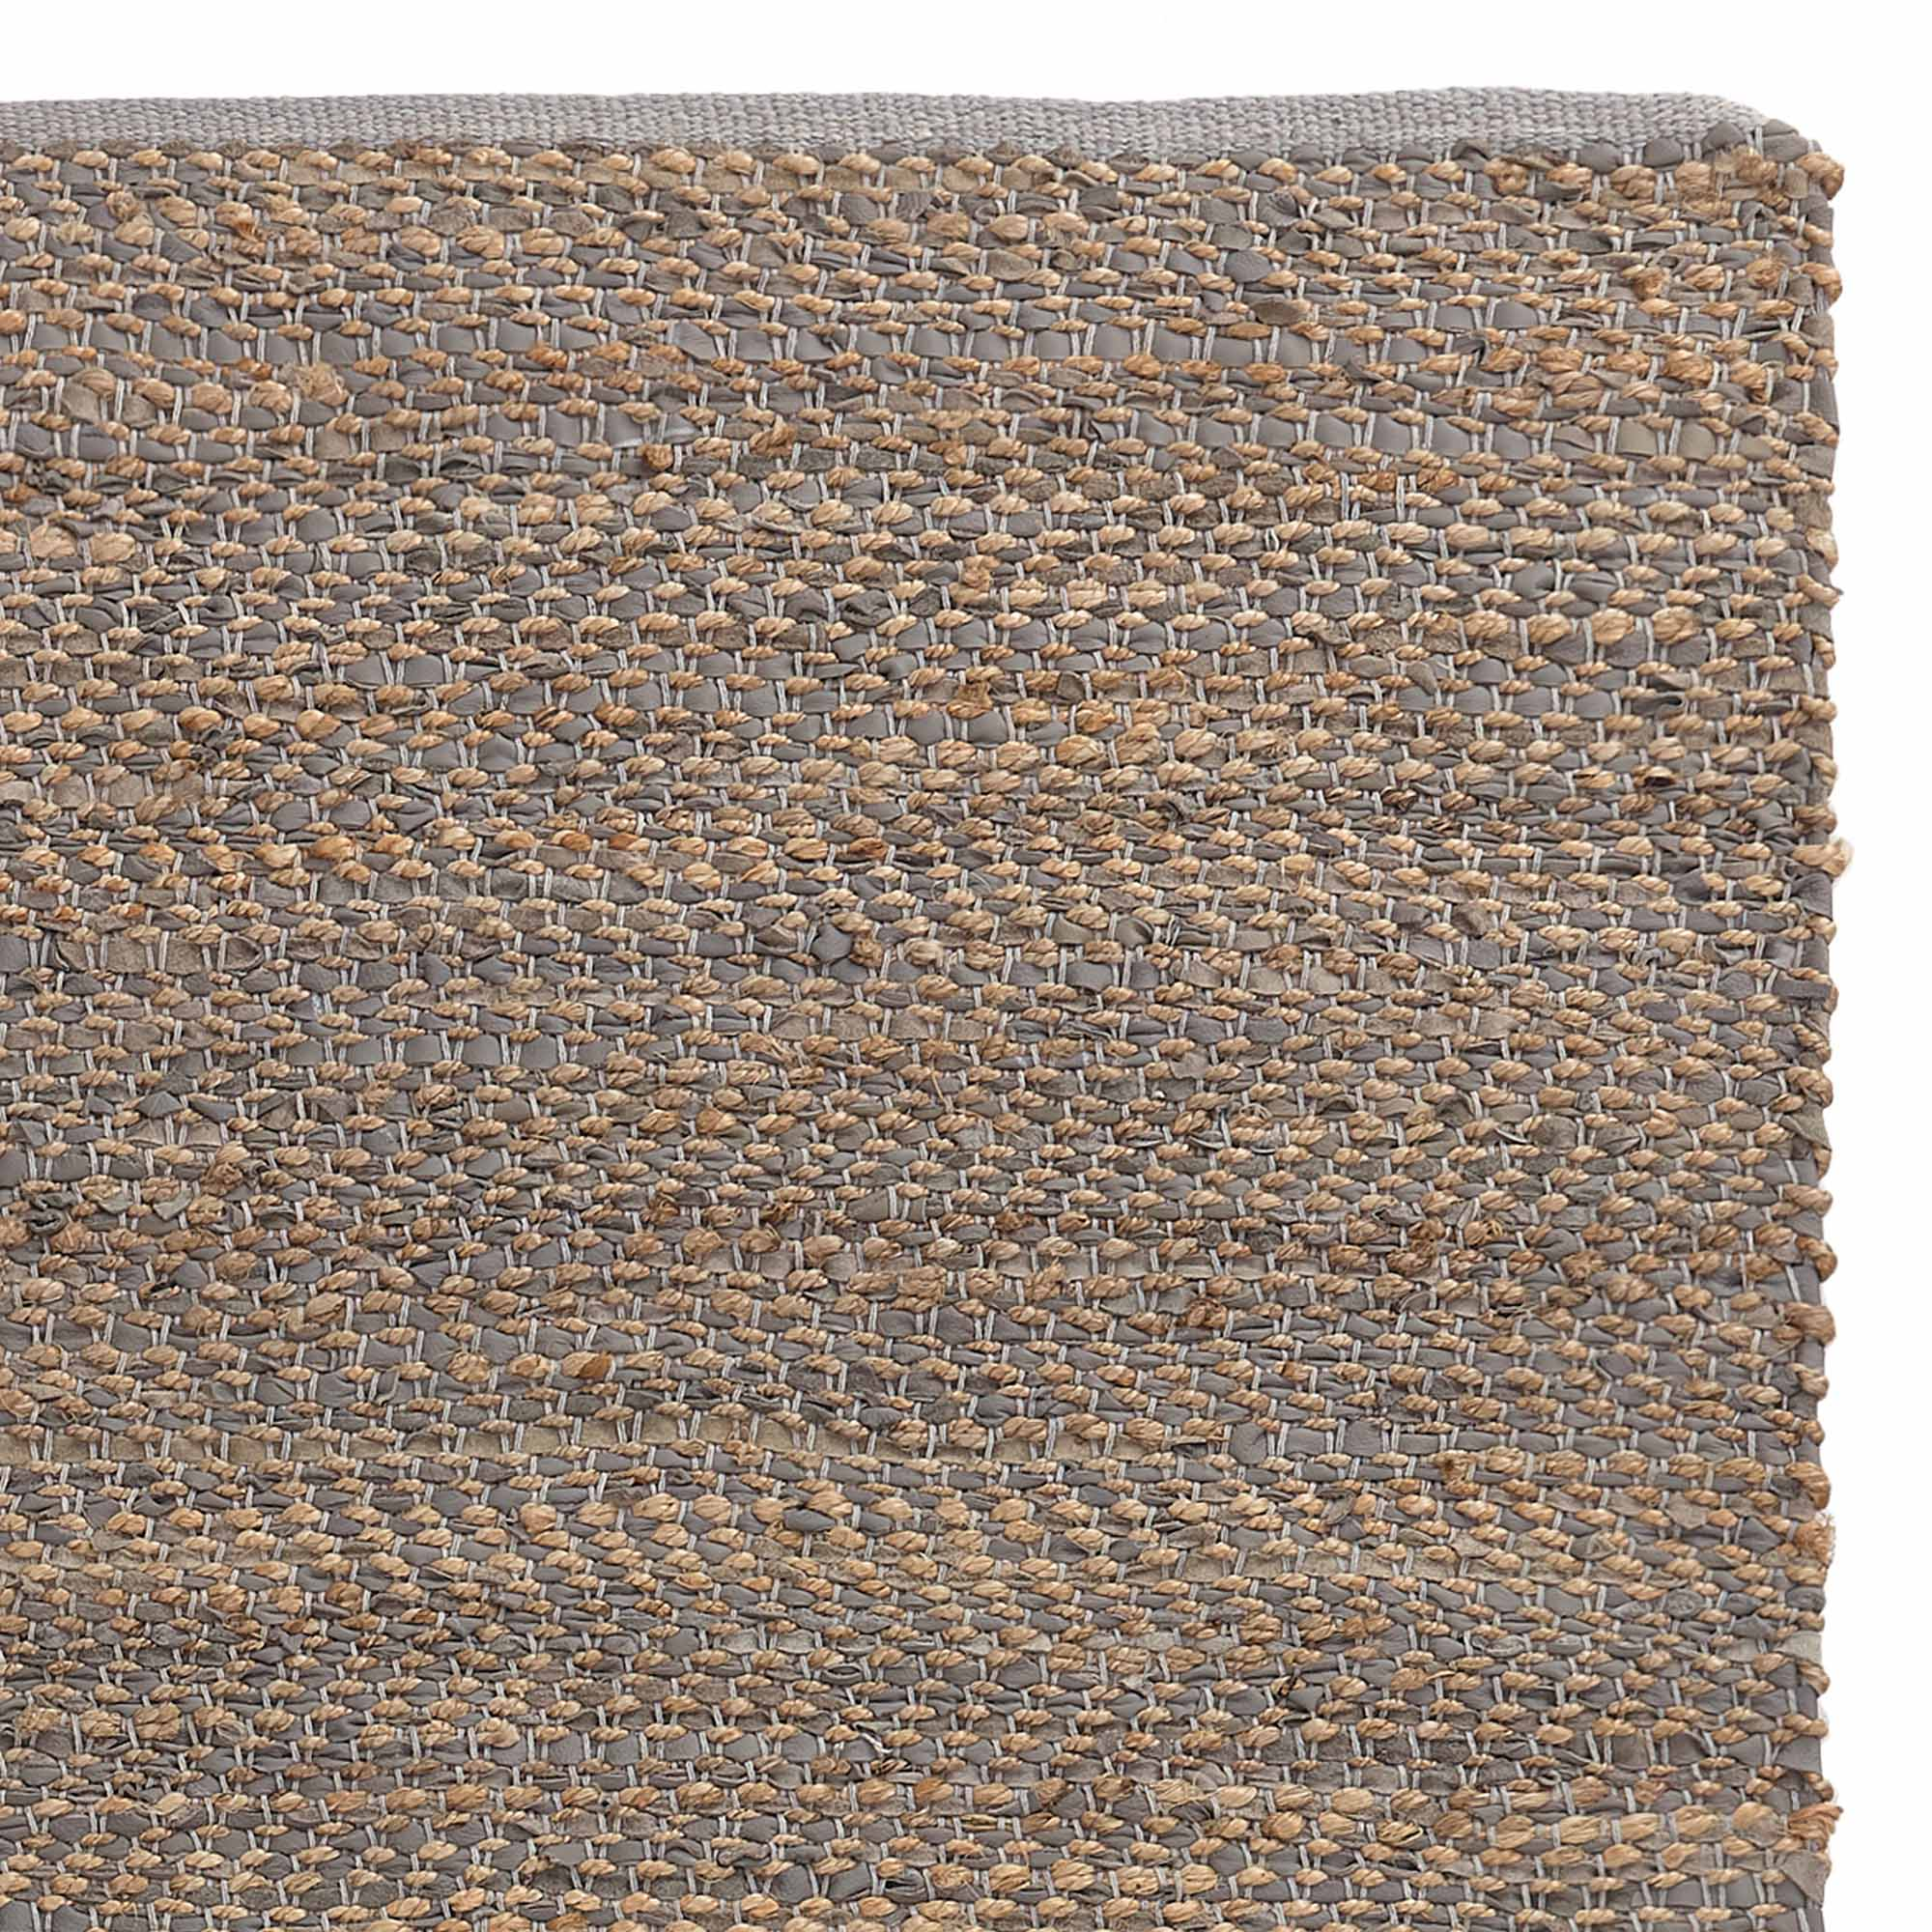 Nattika runner, grey & natural, 45% leather & 45% jute & 10% cotton